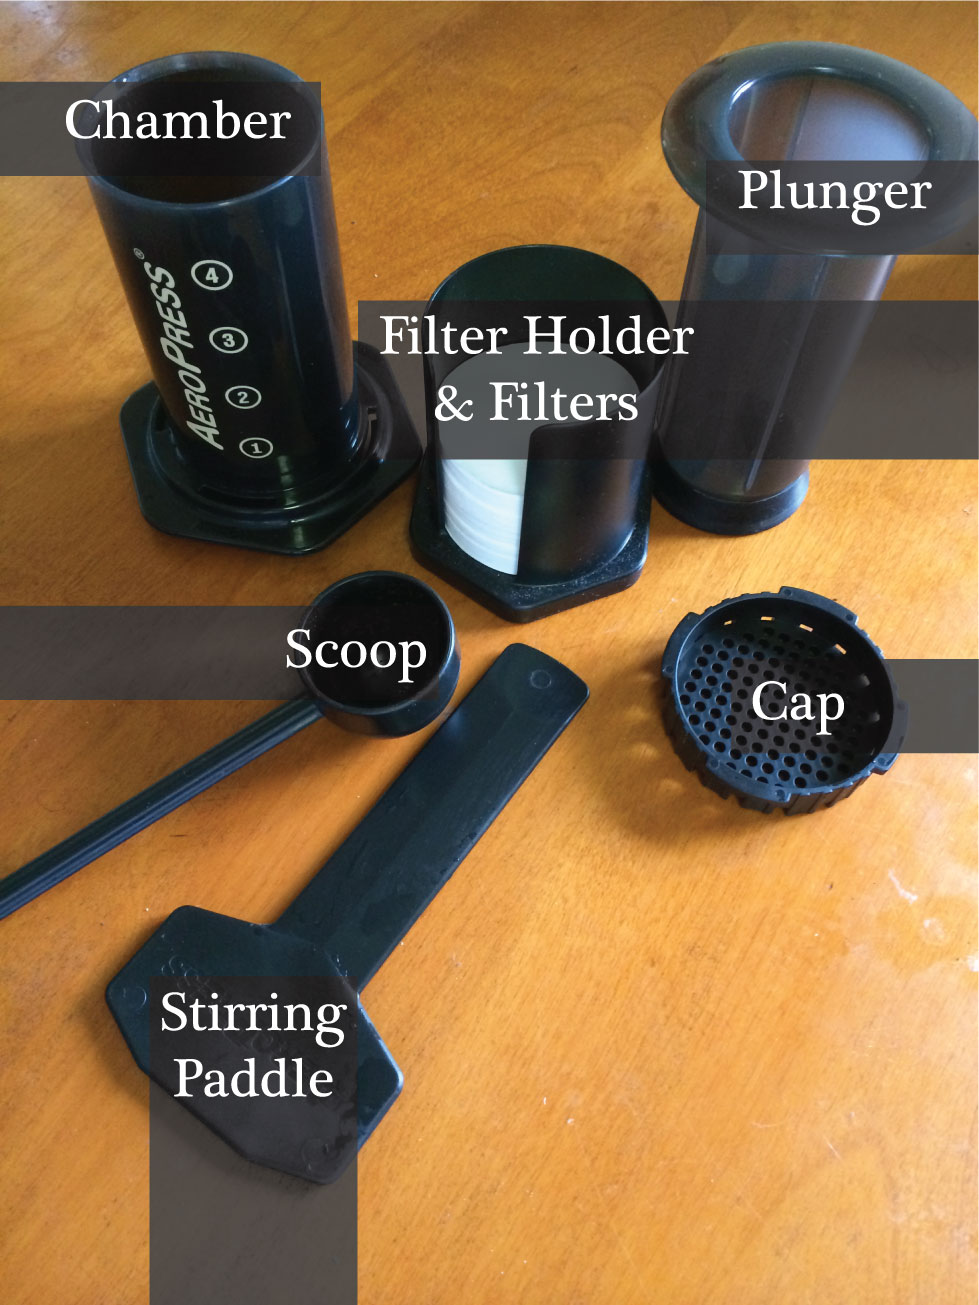 The Aero Press has 7 parts: Scoop, Stirring Paddle, Chamber, Filters, Filter Holder, Cap, and Plunger.